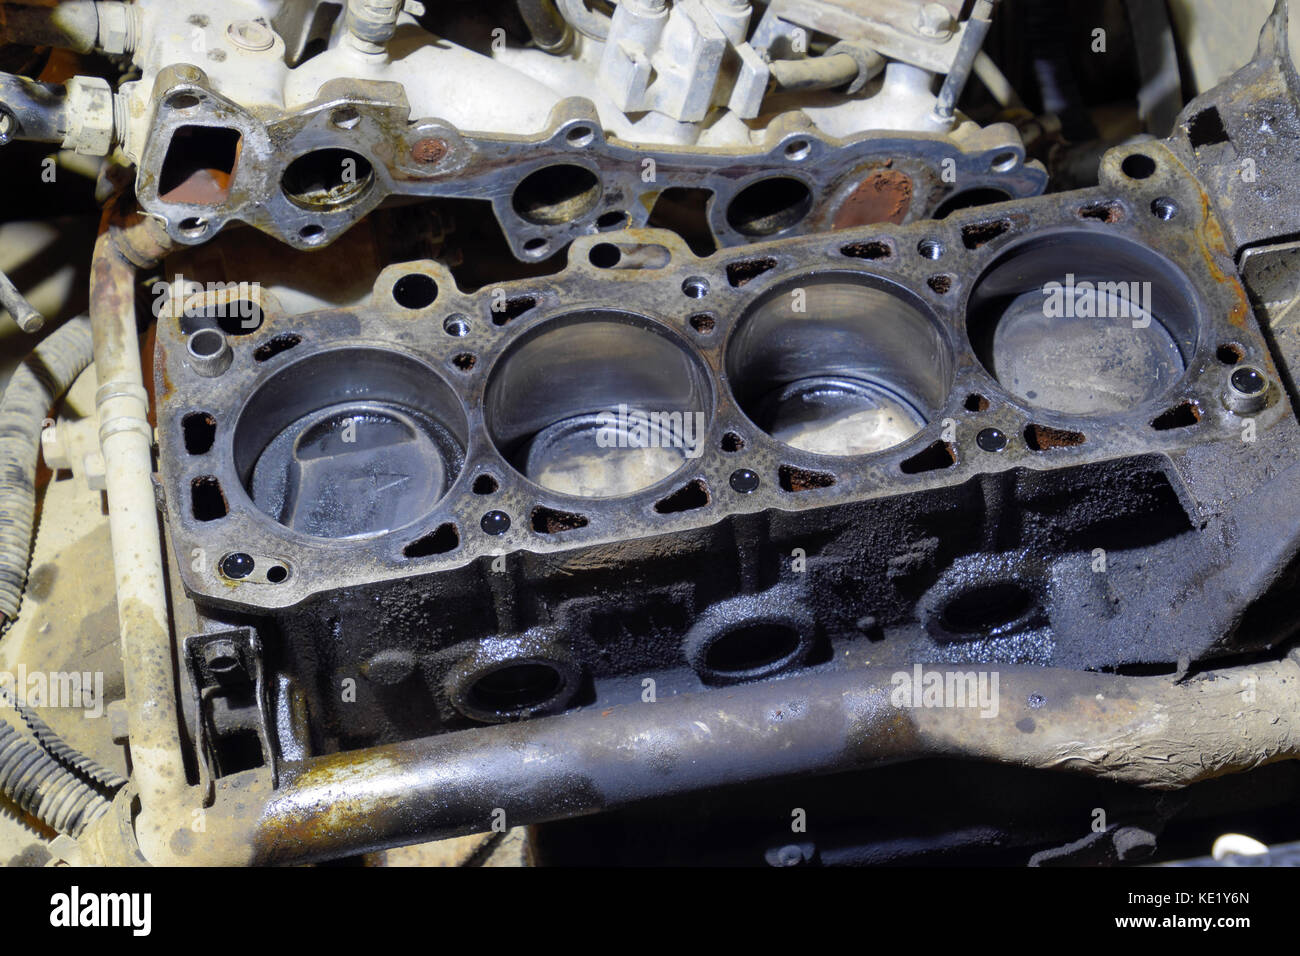 The cylinder block of the four-cylinder engine. Disassembled motor ...